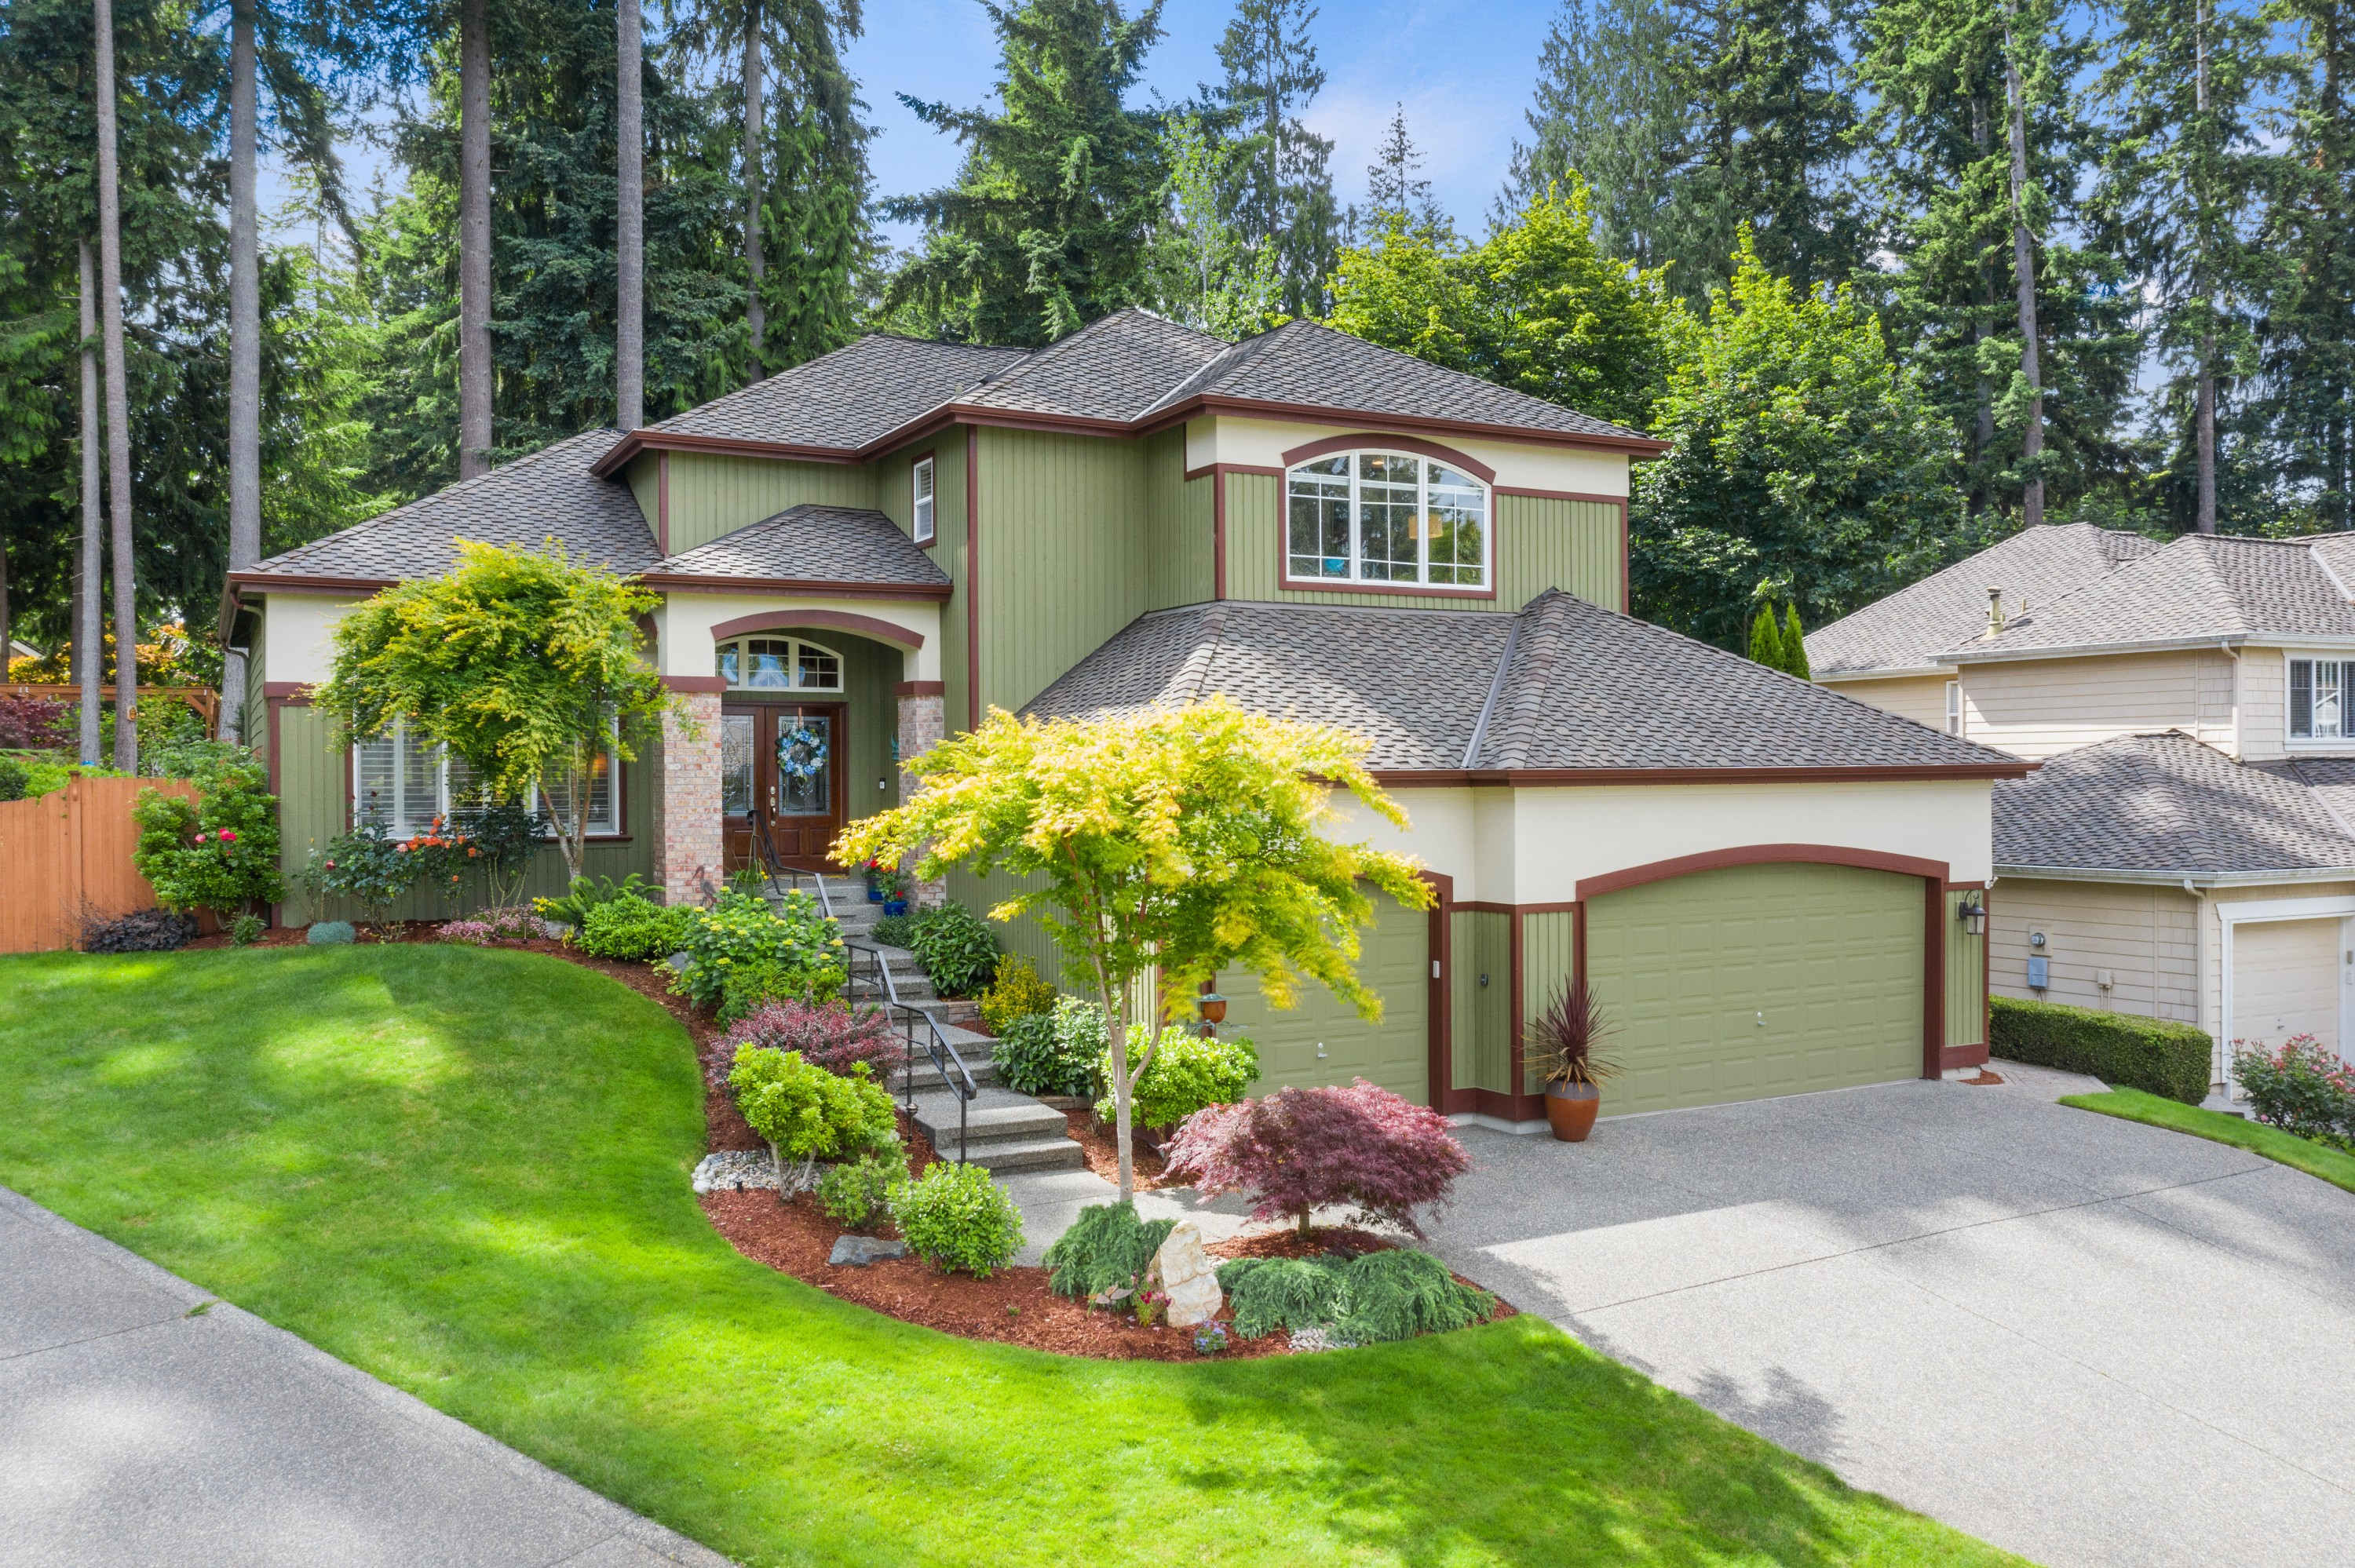 Brighton - A Highly desirable Mill Creek Neighborhood